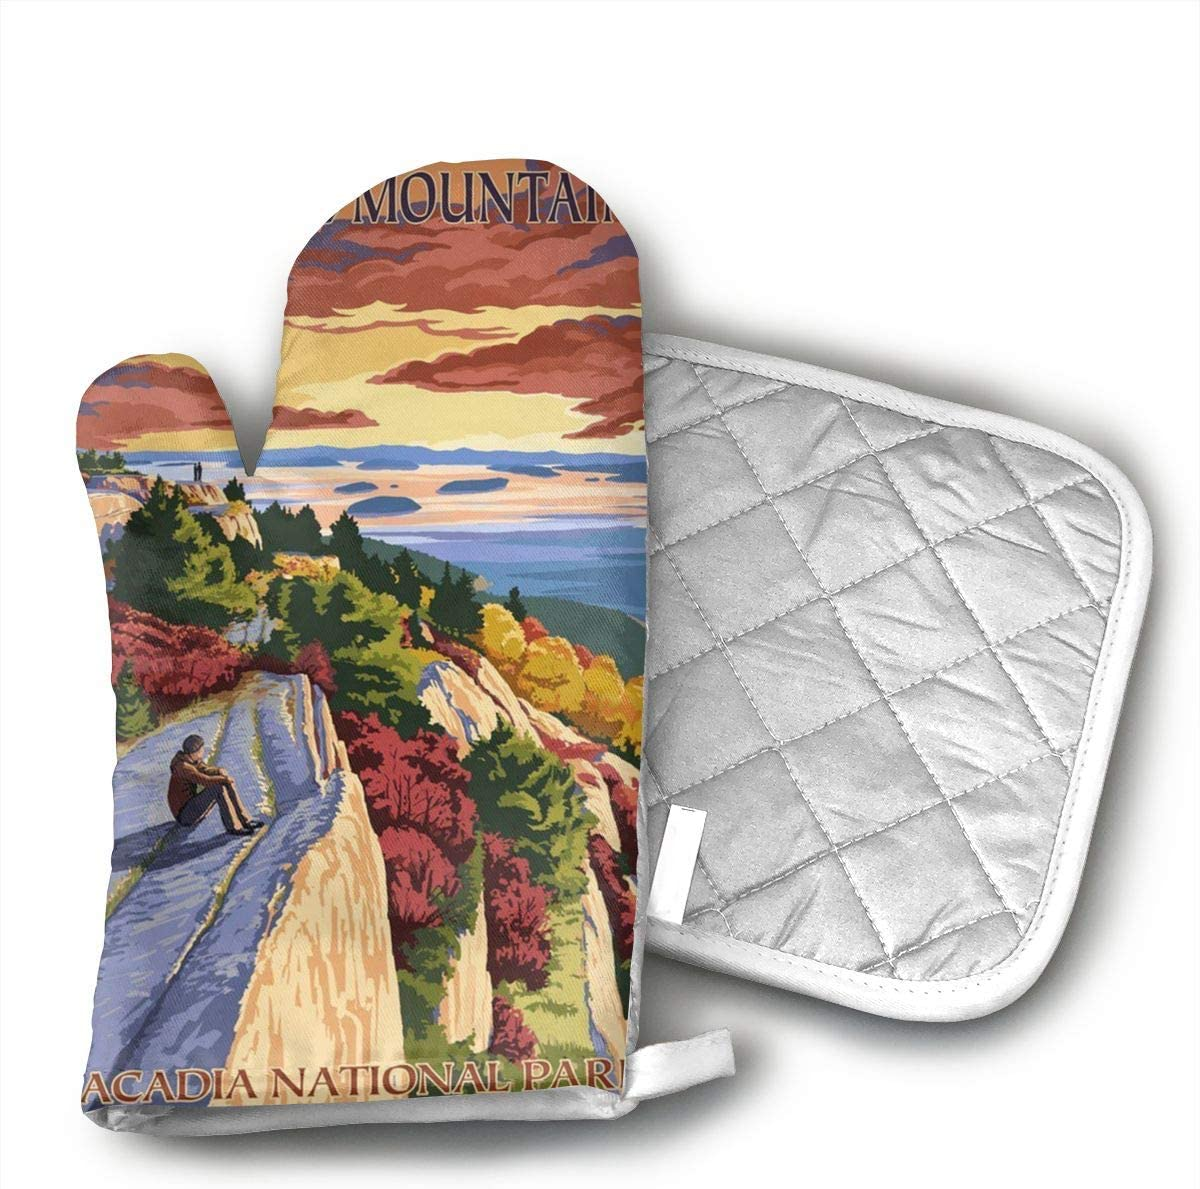 Klasl5 Acadia National Park, Maine - Cadillac Mountain Oven Mitts,Heat Resistant Oven Gloves,Non-Slip Cooking Gloves,Washable Kitchen Mitts for Baking, Barbecue.